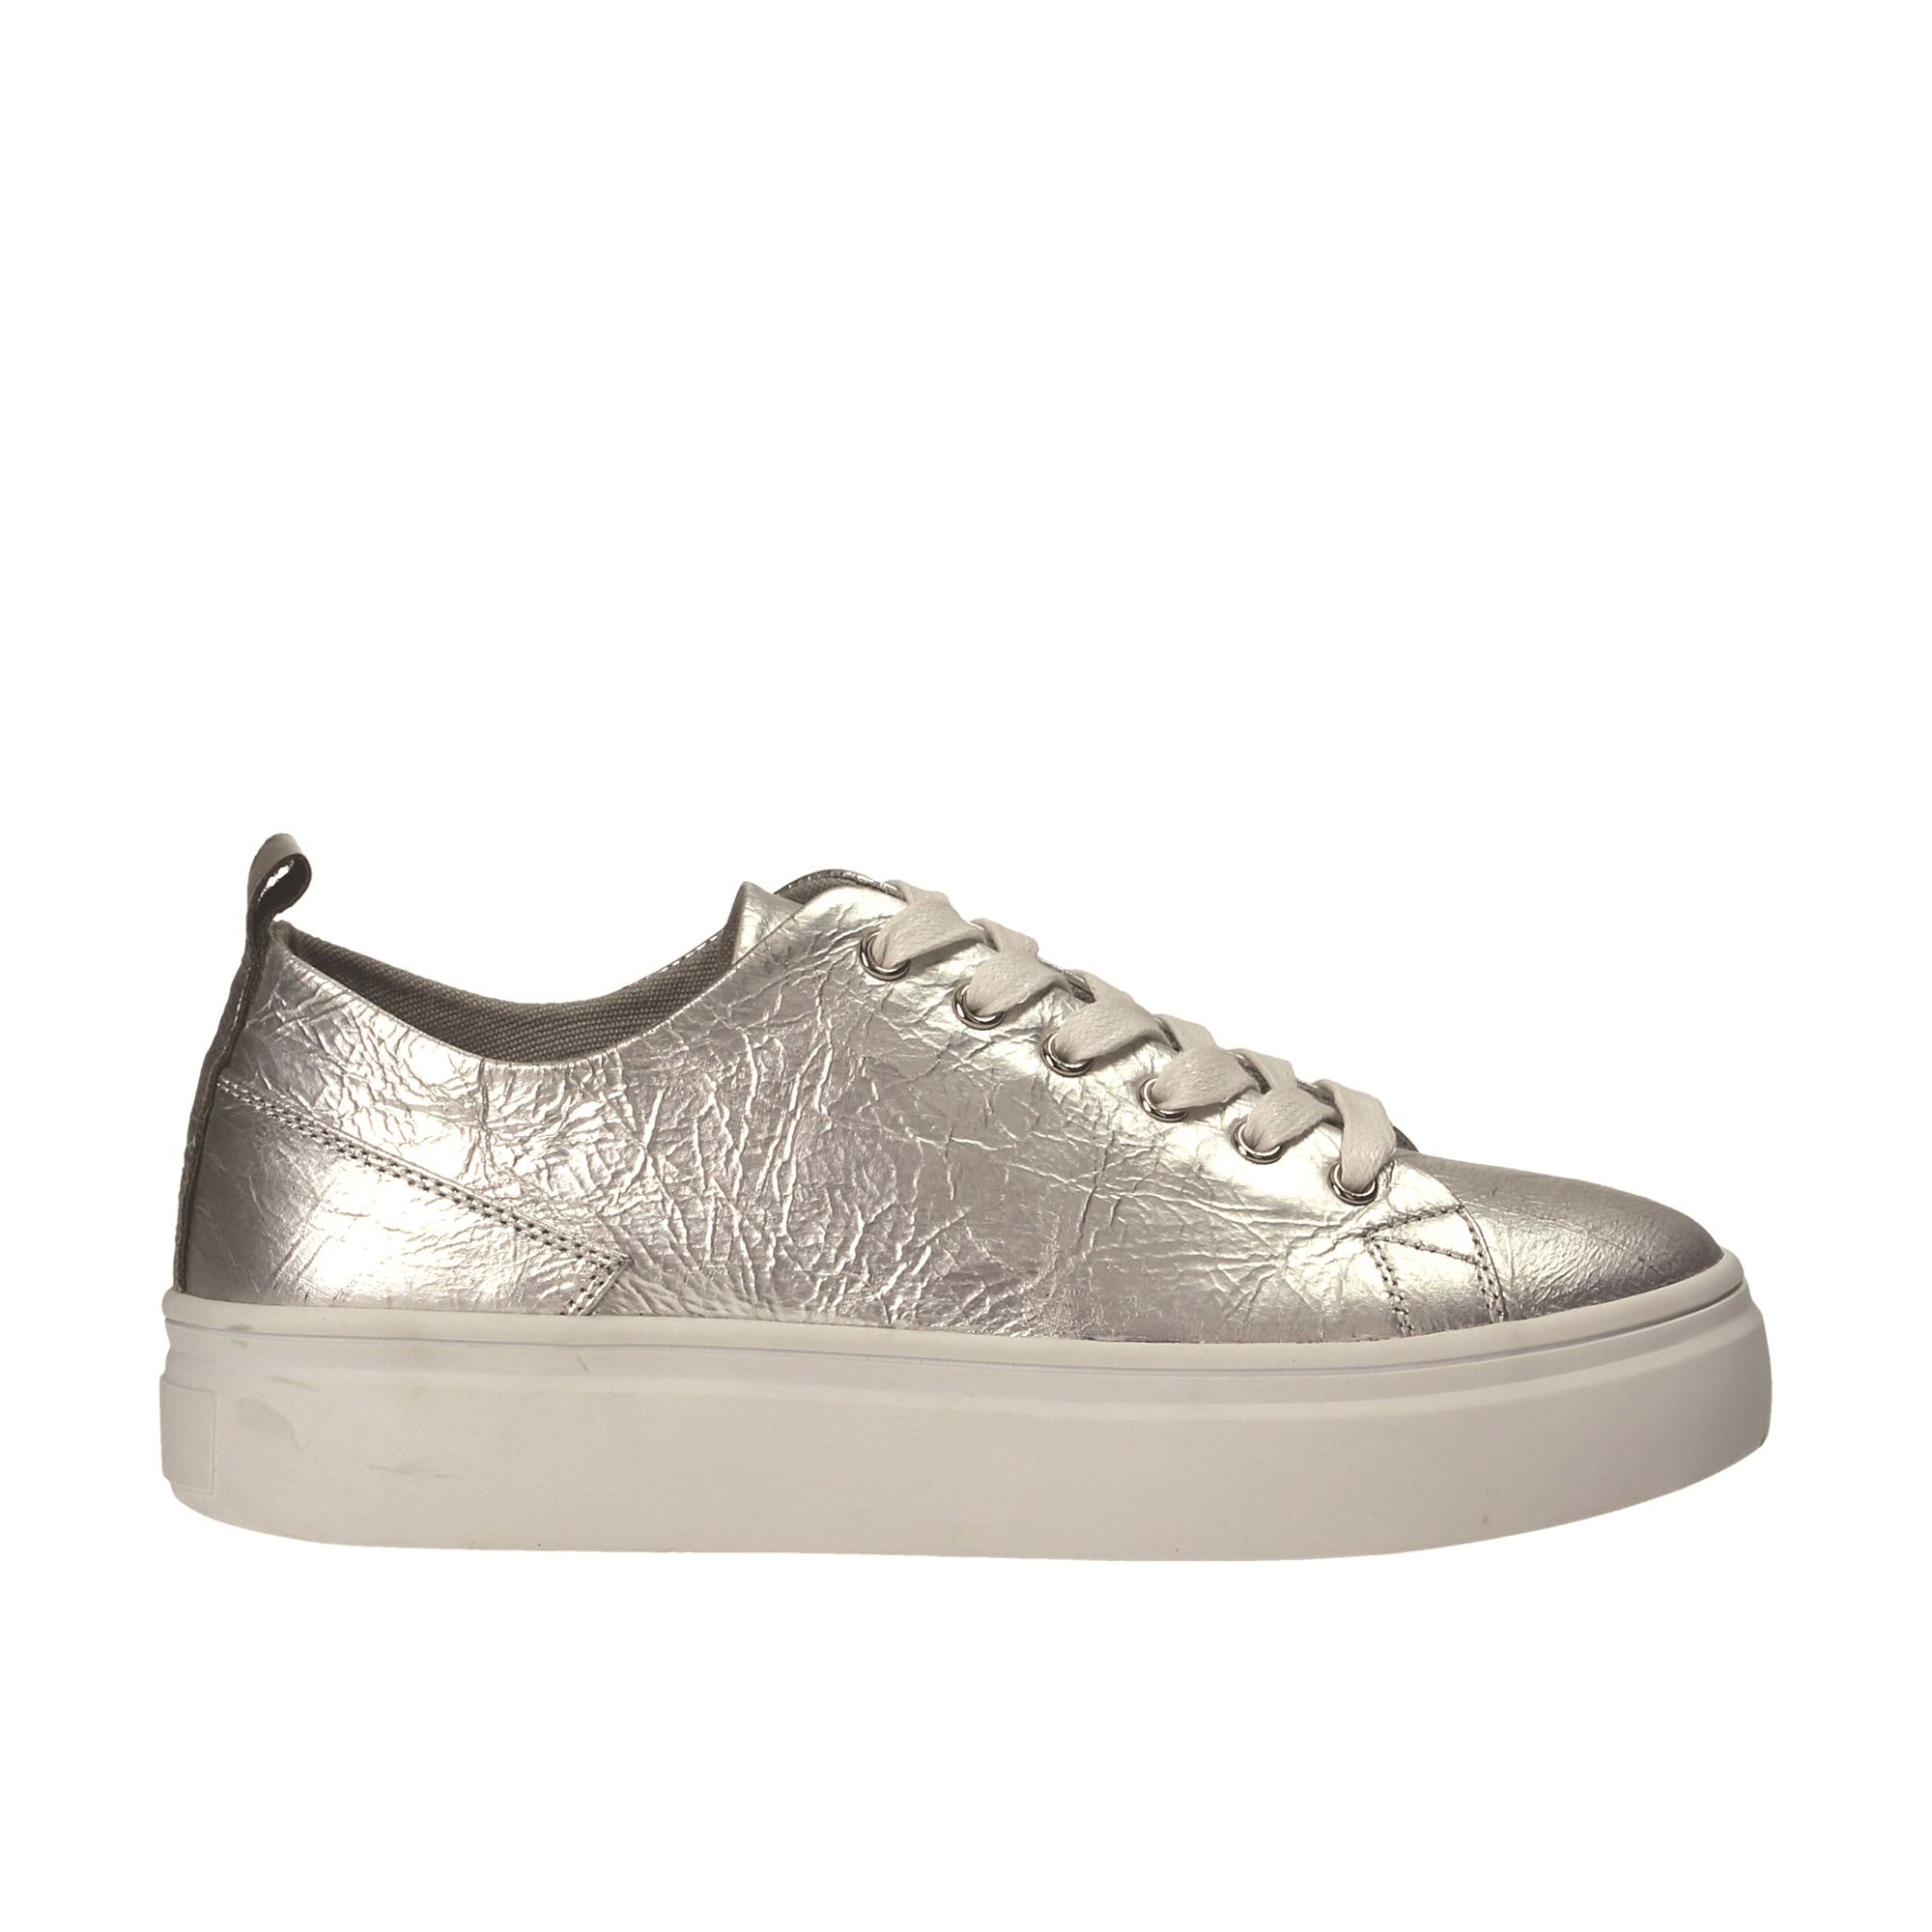 Tata Italia Shoes Woman Sneakers Silver 892-9